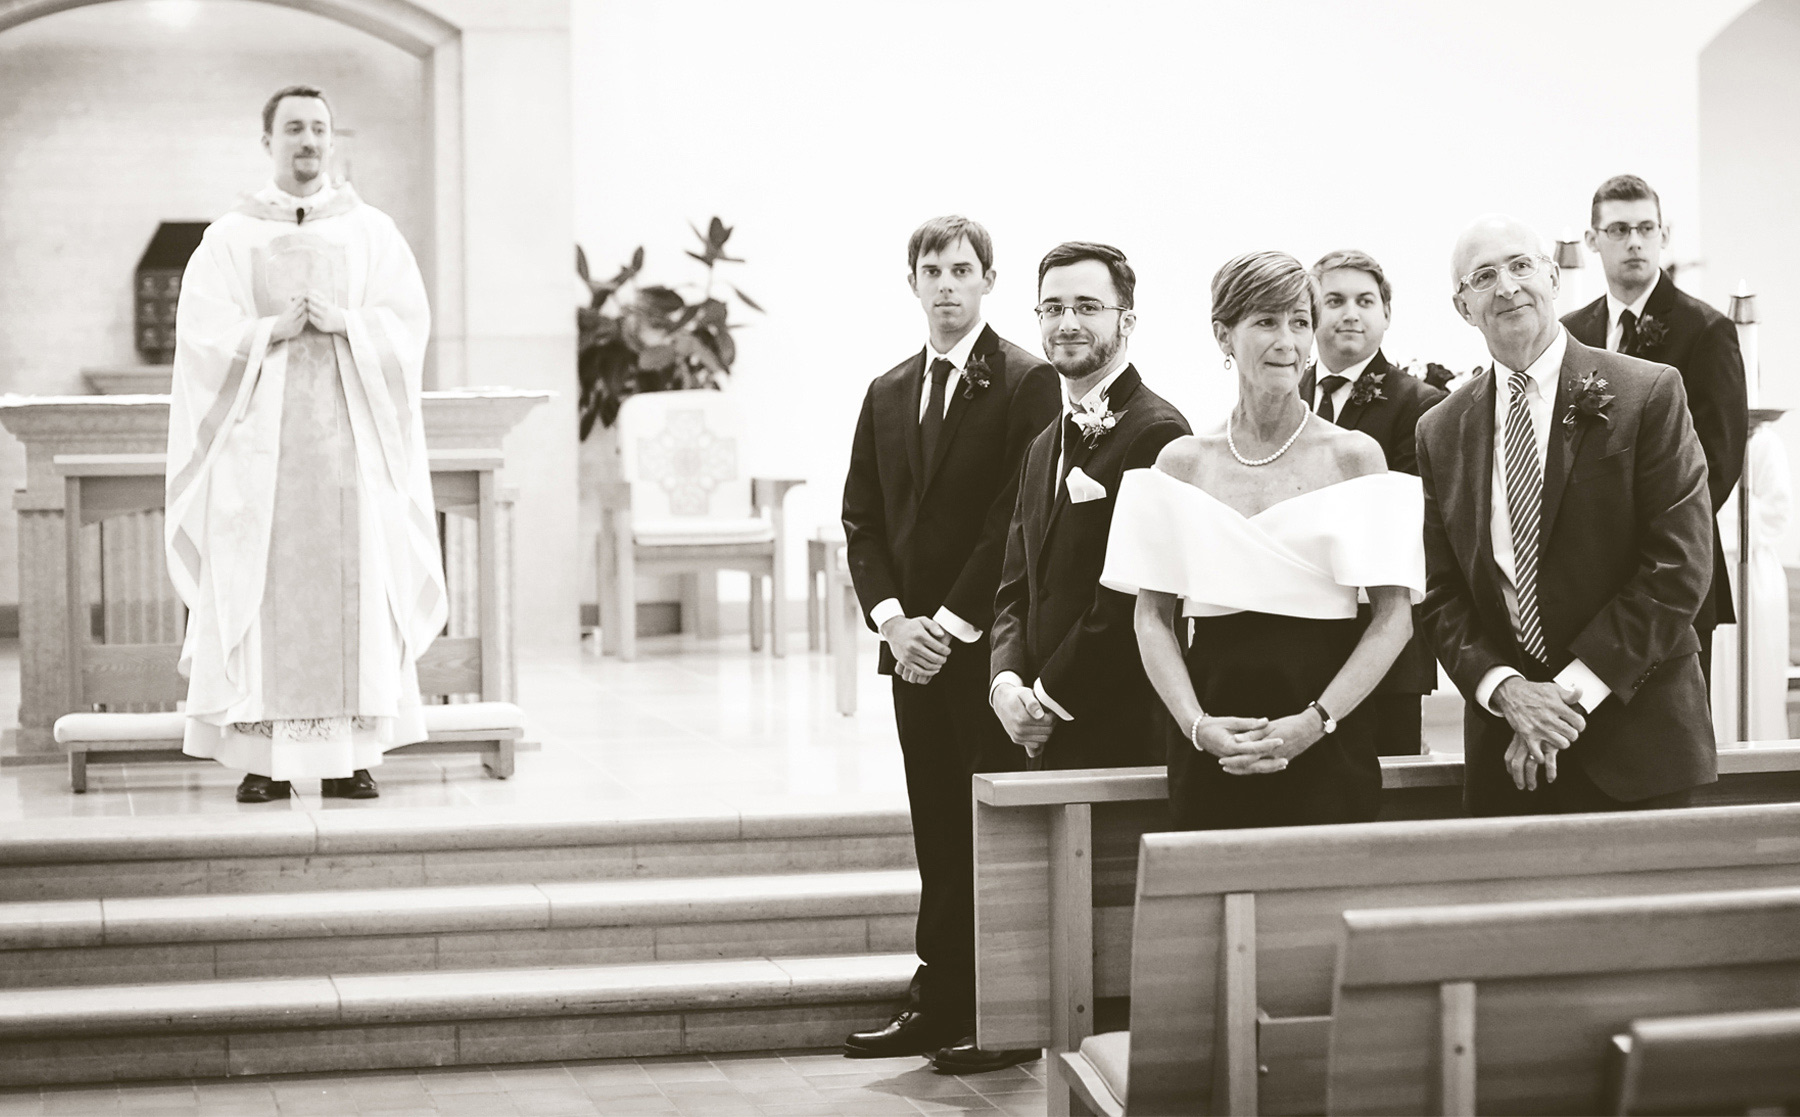 08-Minneapolis-Minnesota-Wedding-Photography-by-Vick-Photography-Our-Lady-of-Grace-Church-Ceremony-Sarah-and-Patrick.jpg